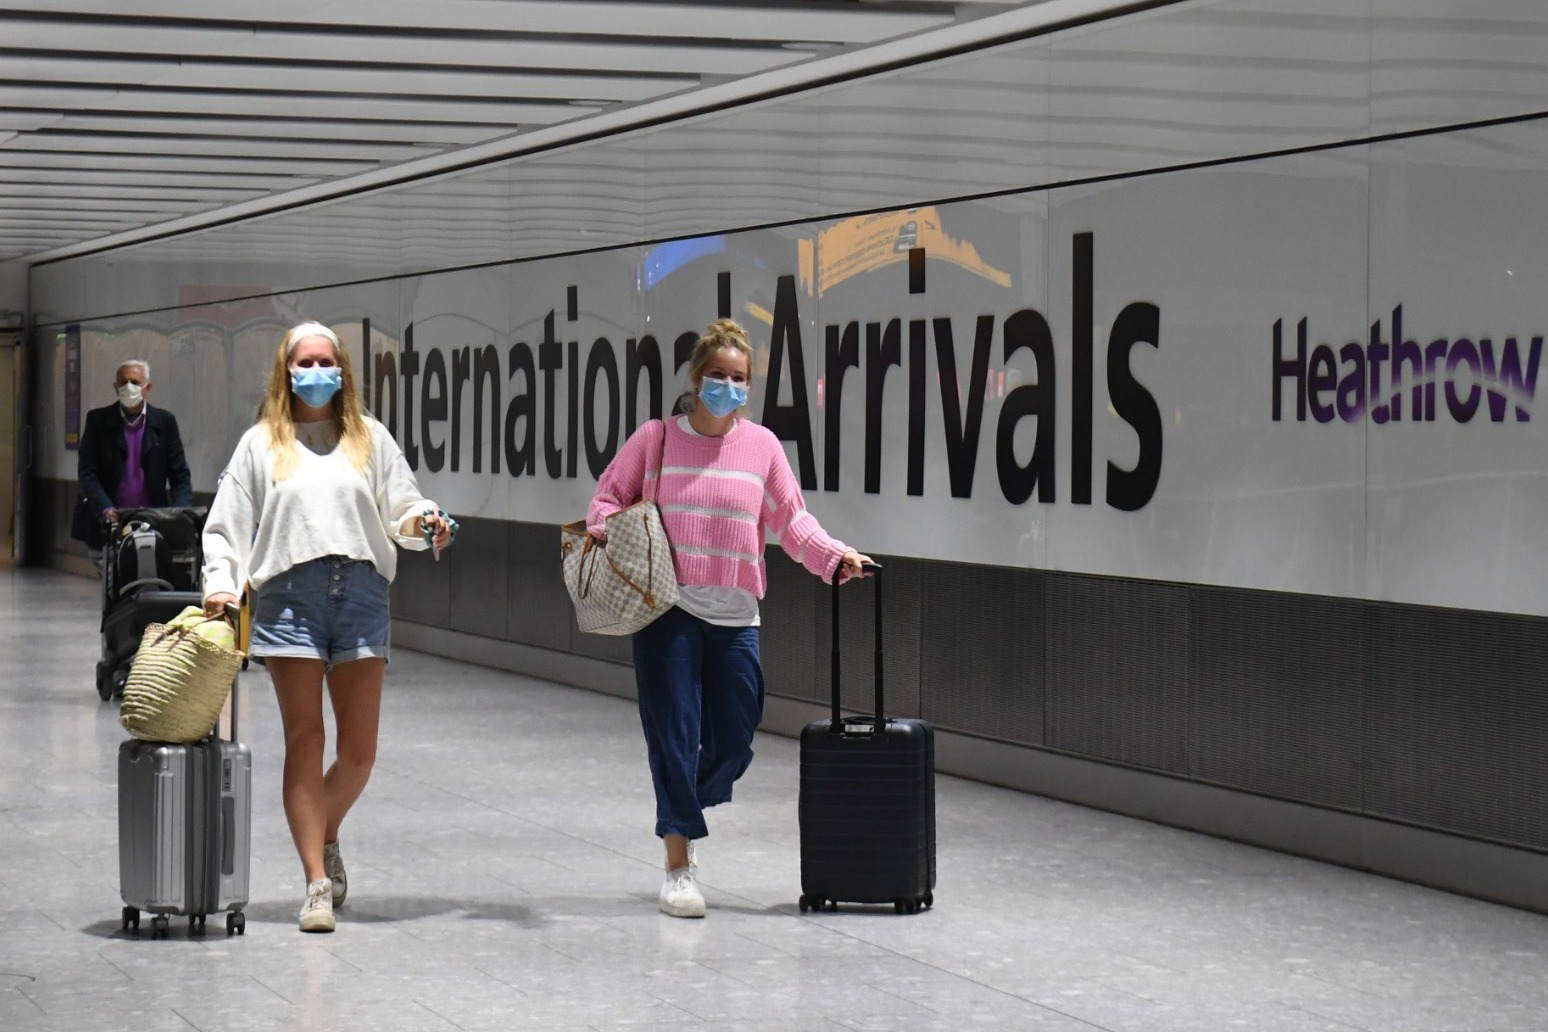 Holidaymakers scramble to beat quarantine as new restrictions imposed in north